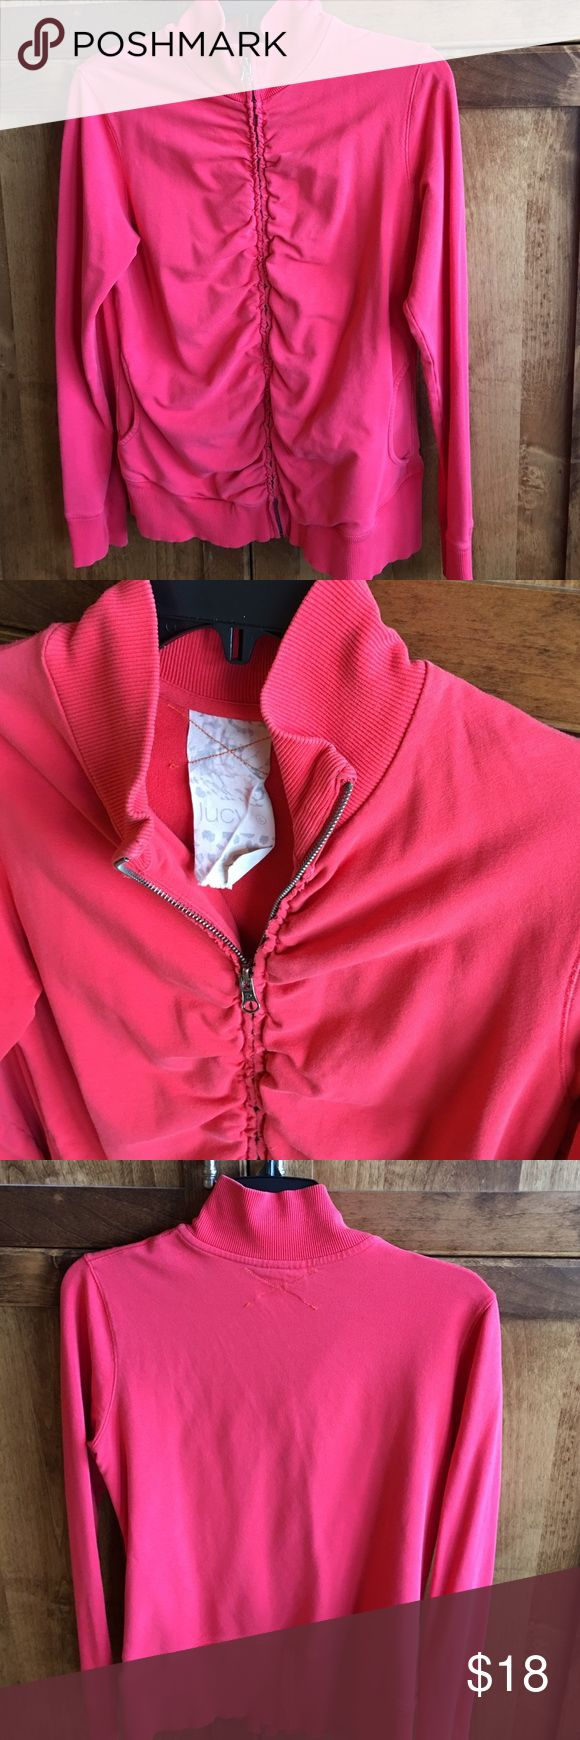 Lucy coral/orange zip up Such a cute zip up with the rouching detail on the zipper. Good used condition with no flaws or stains! Lucy Tops Sweatshirts & Hoodies